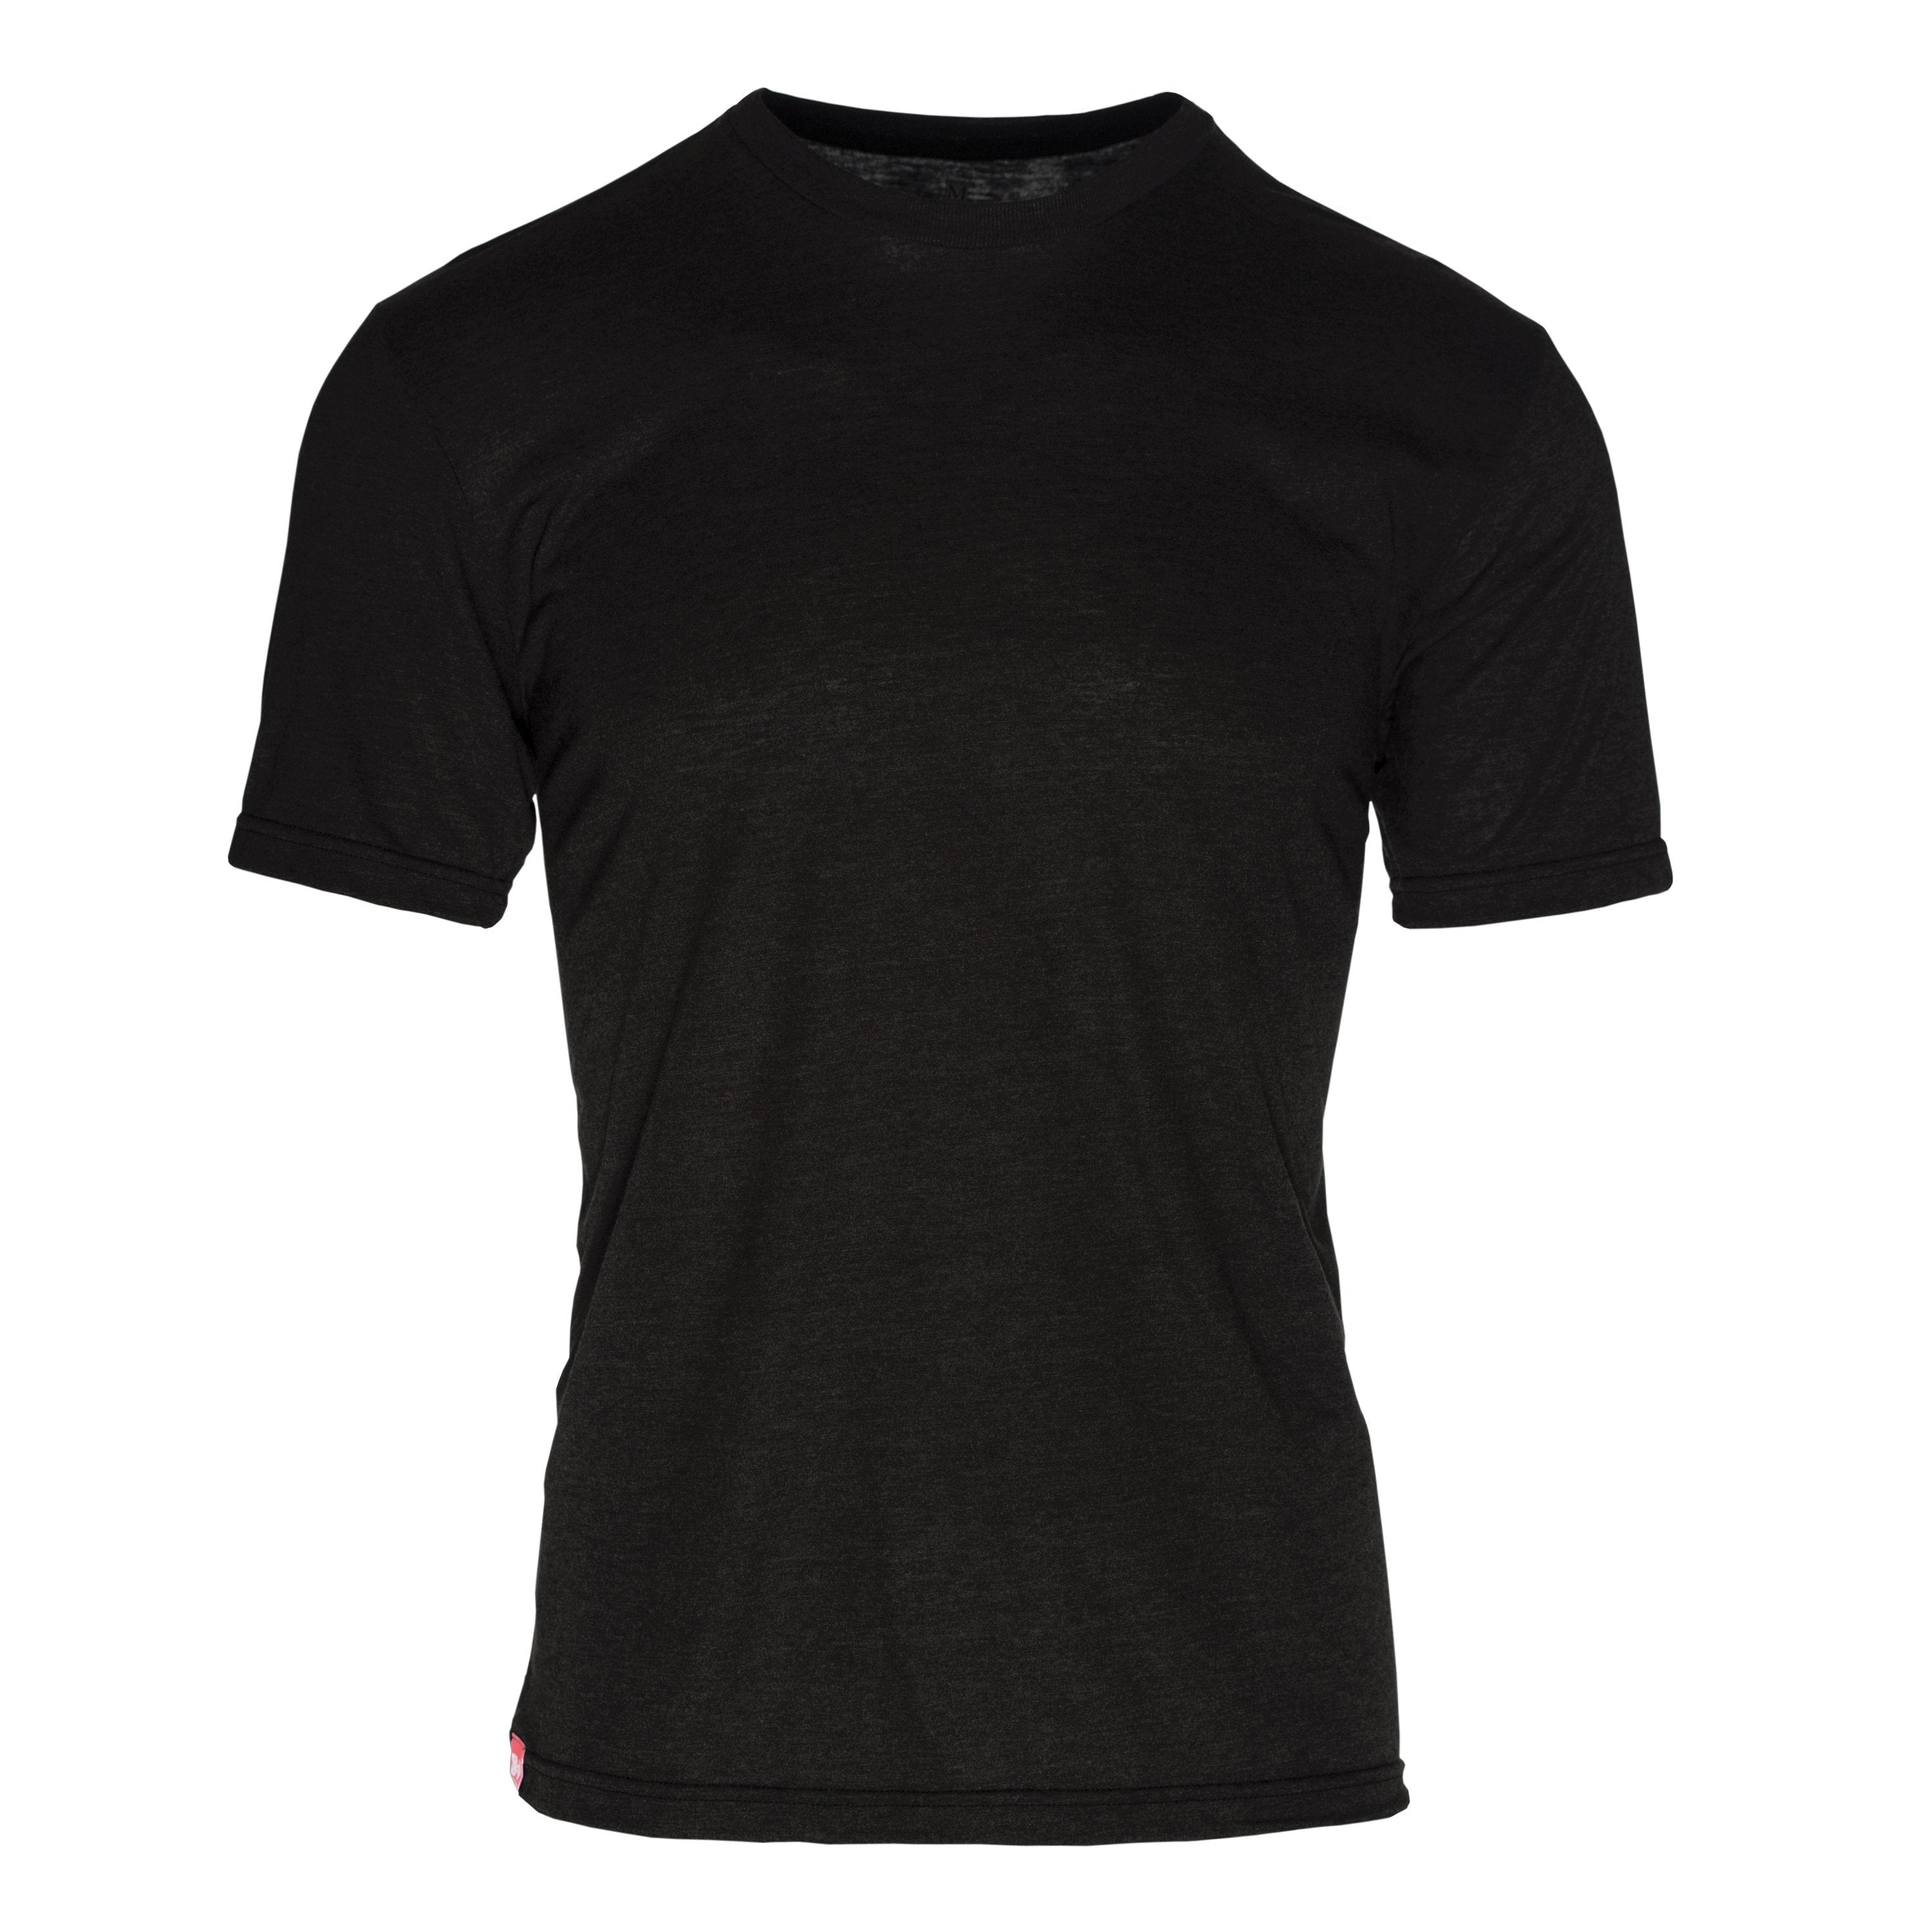 RM101CK Eco REPREVE® Recycled Triblend Crew T-Shirt - Charblack